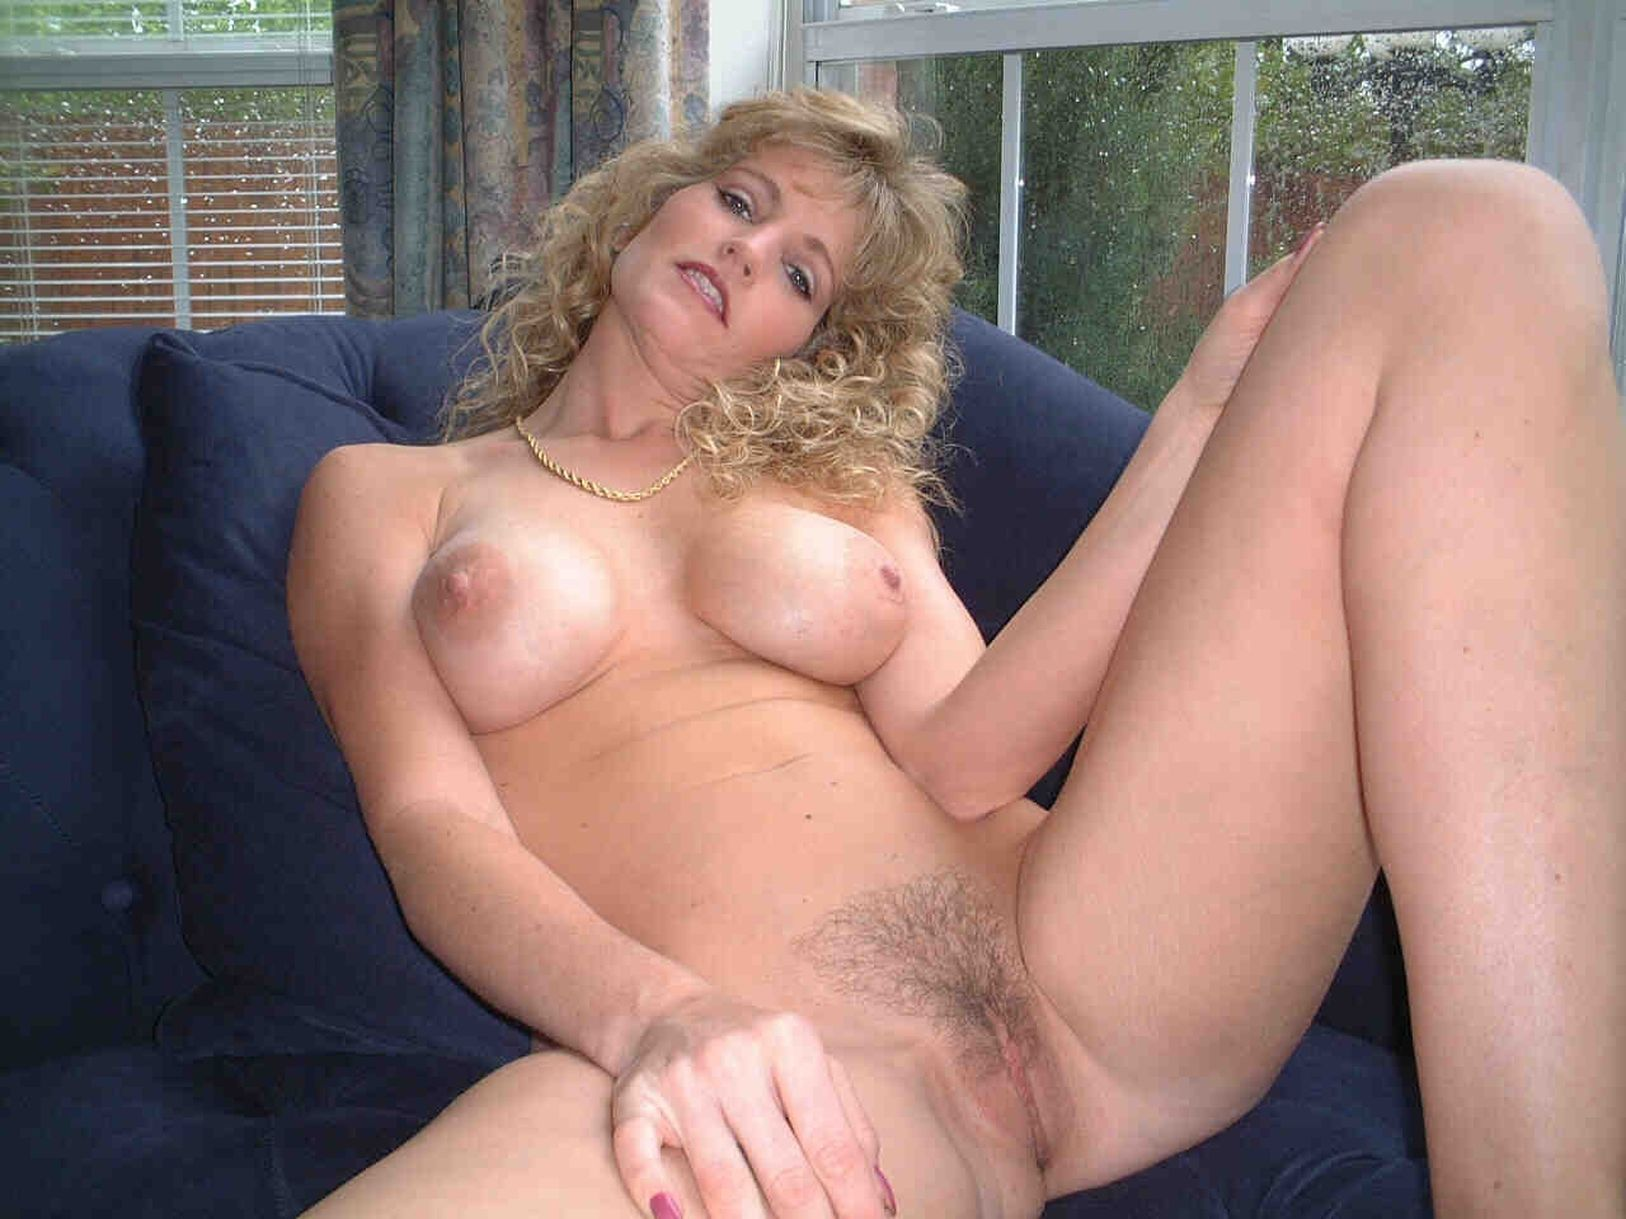 Seems thumbs free milf remarkable, rather